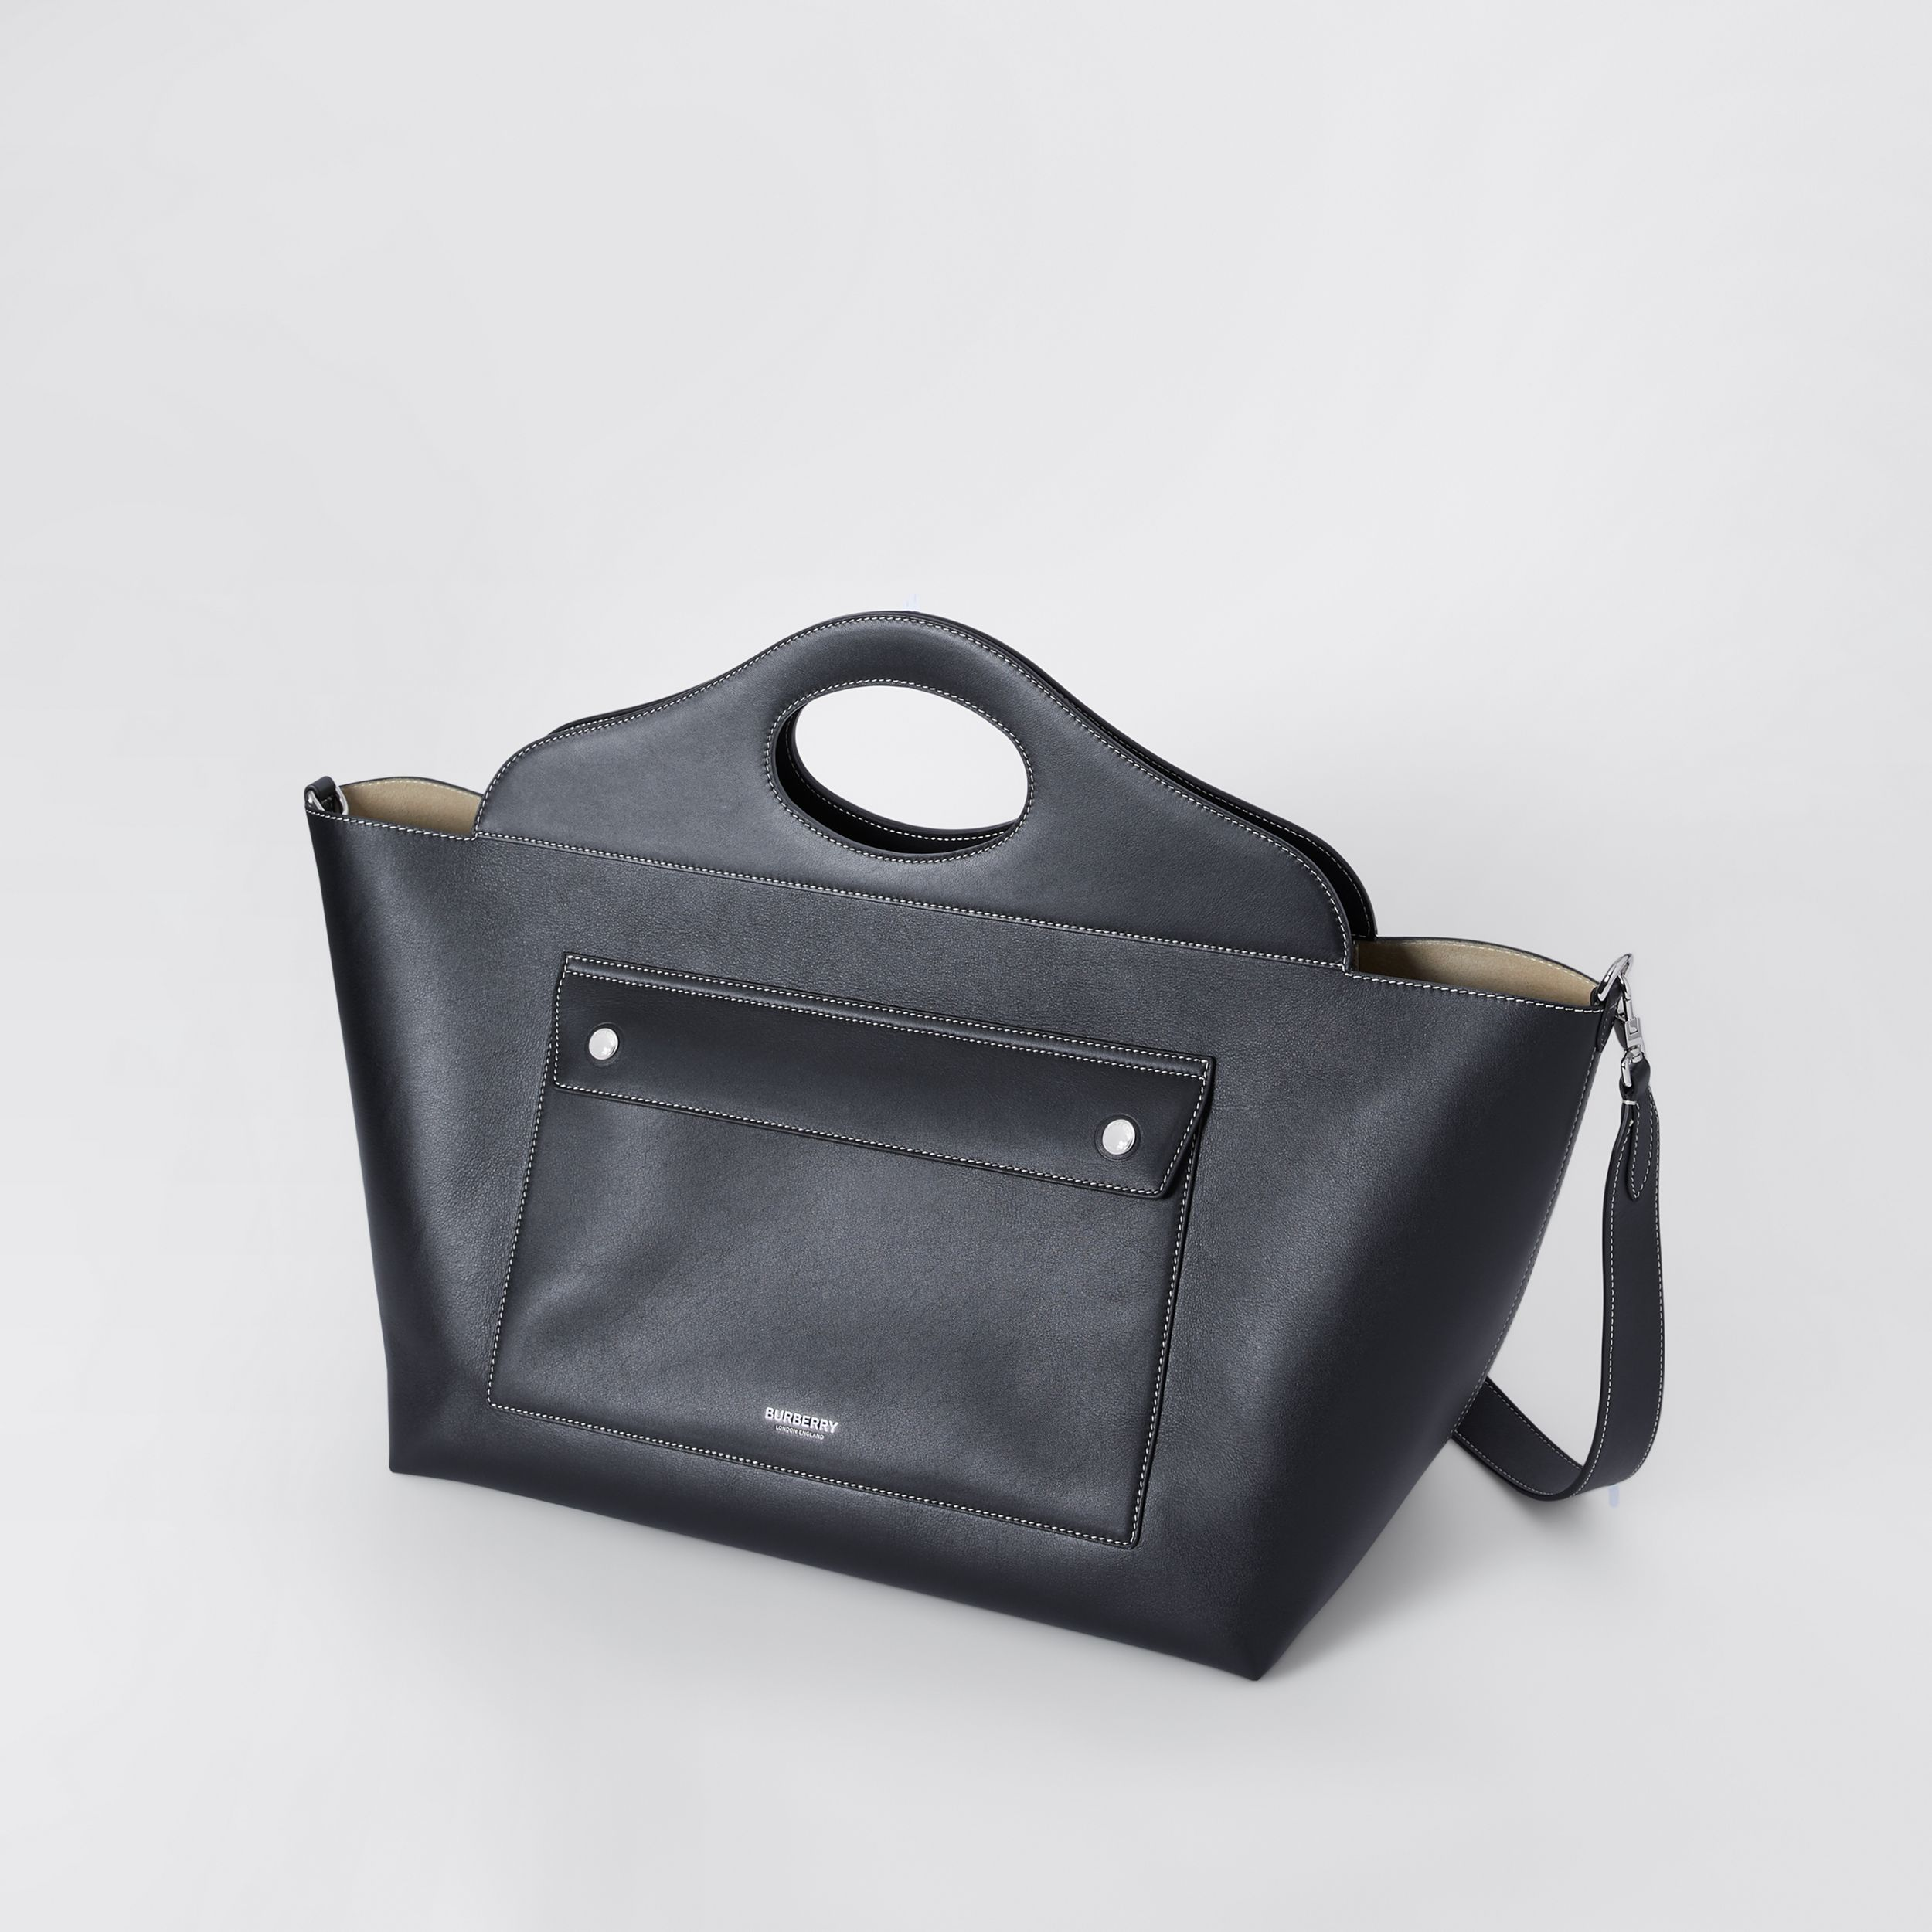 Medium Leather Soft Pocket Tote in Black - Women | Burberry United Kingdom - 4